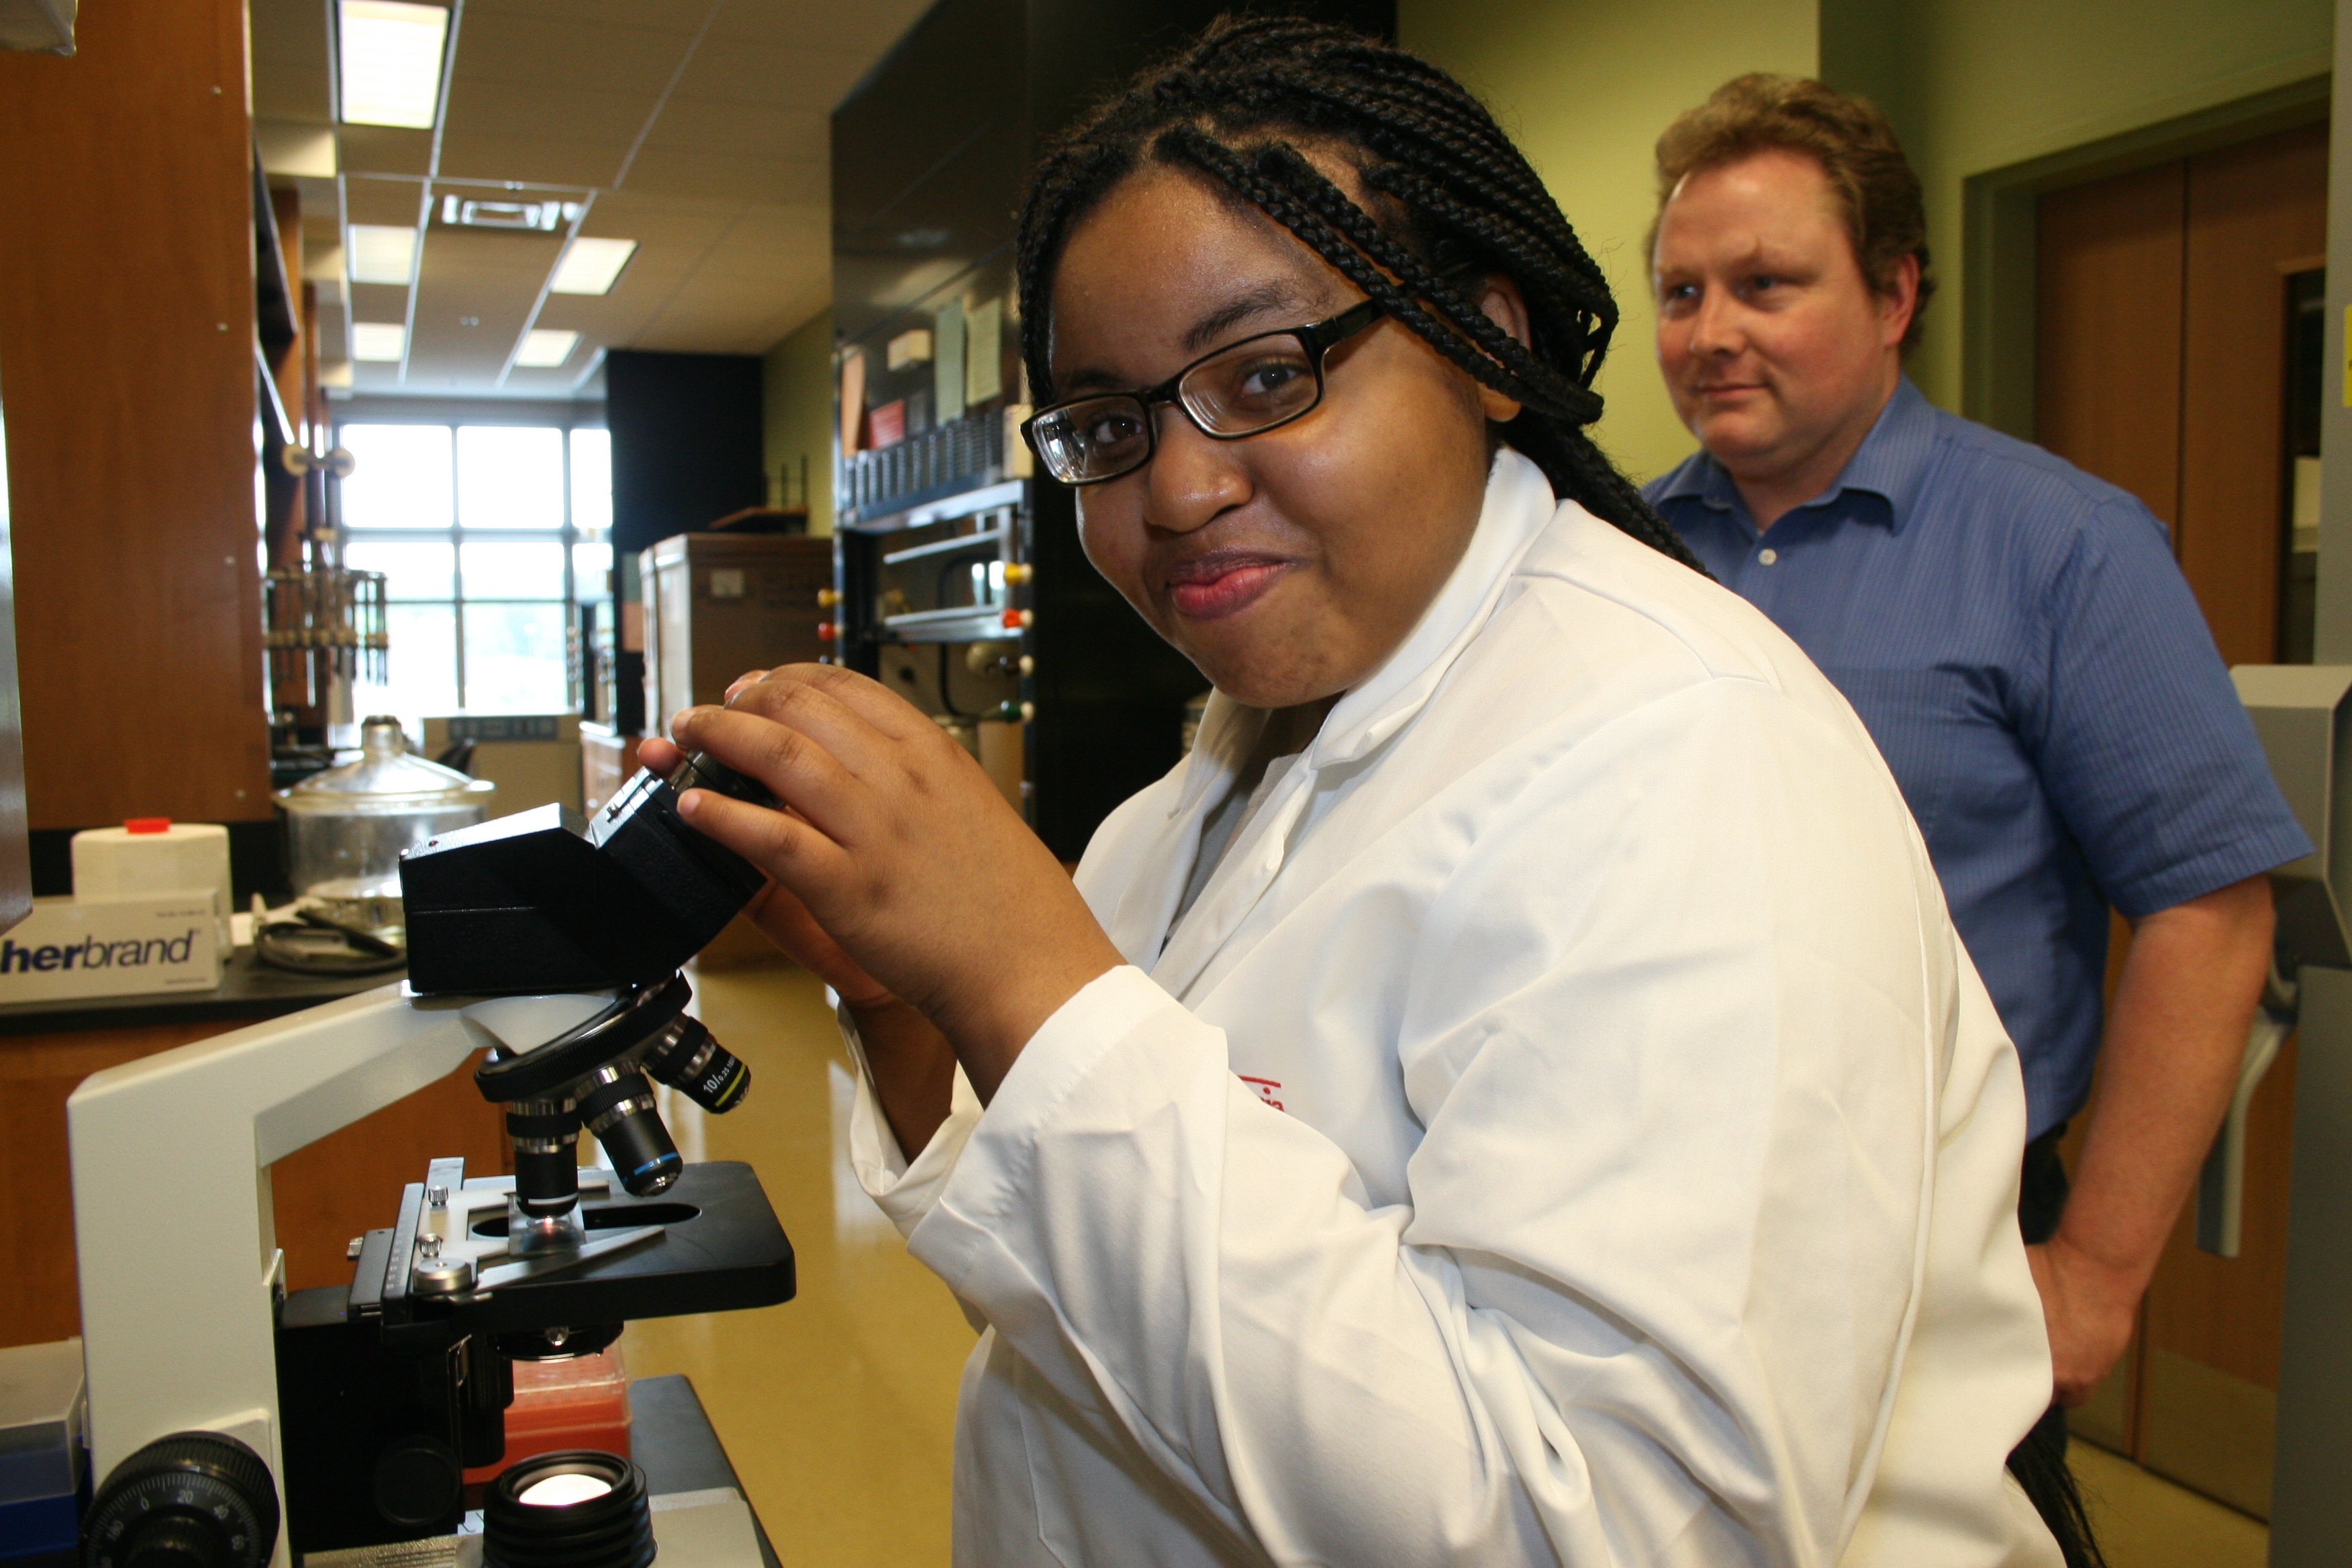 Each year the University of Georgia College of Agricultural and Environmental Sciences offers paid research internships to Georgia high school students through the UGA Young Scholars Program. The application deadline for summer 2017's internships is Jan. 31.